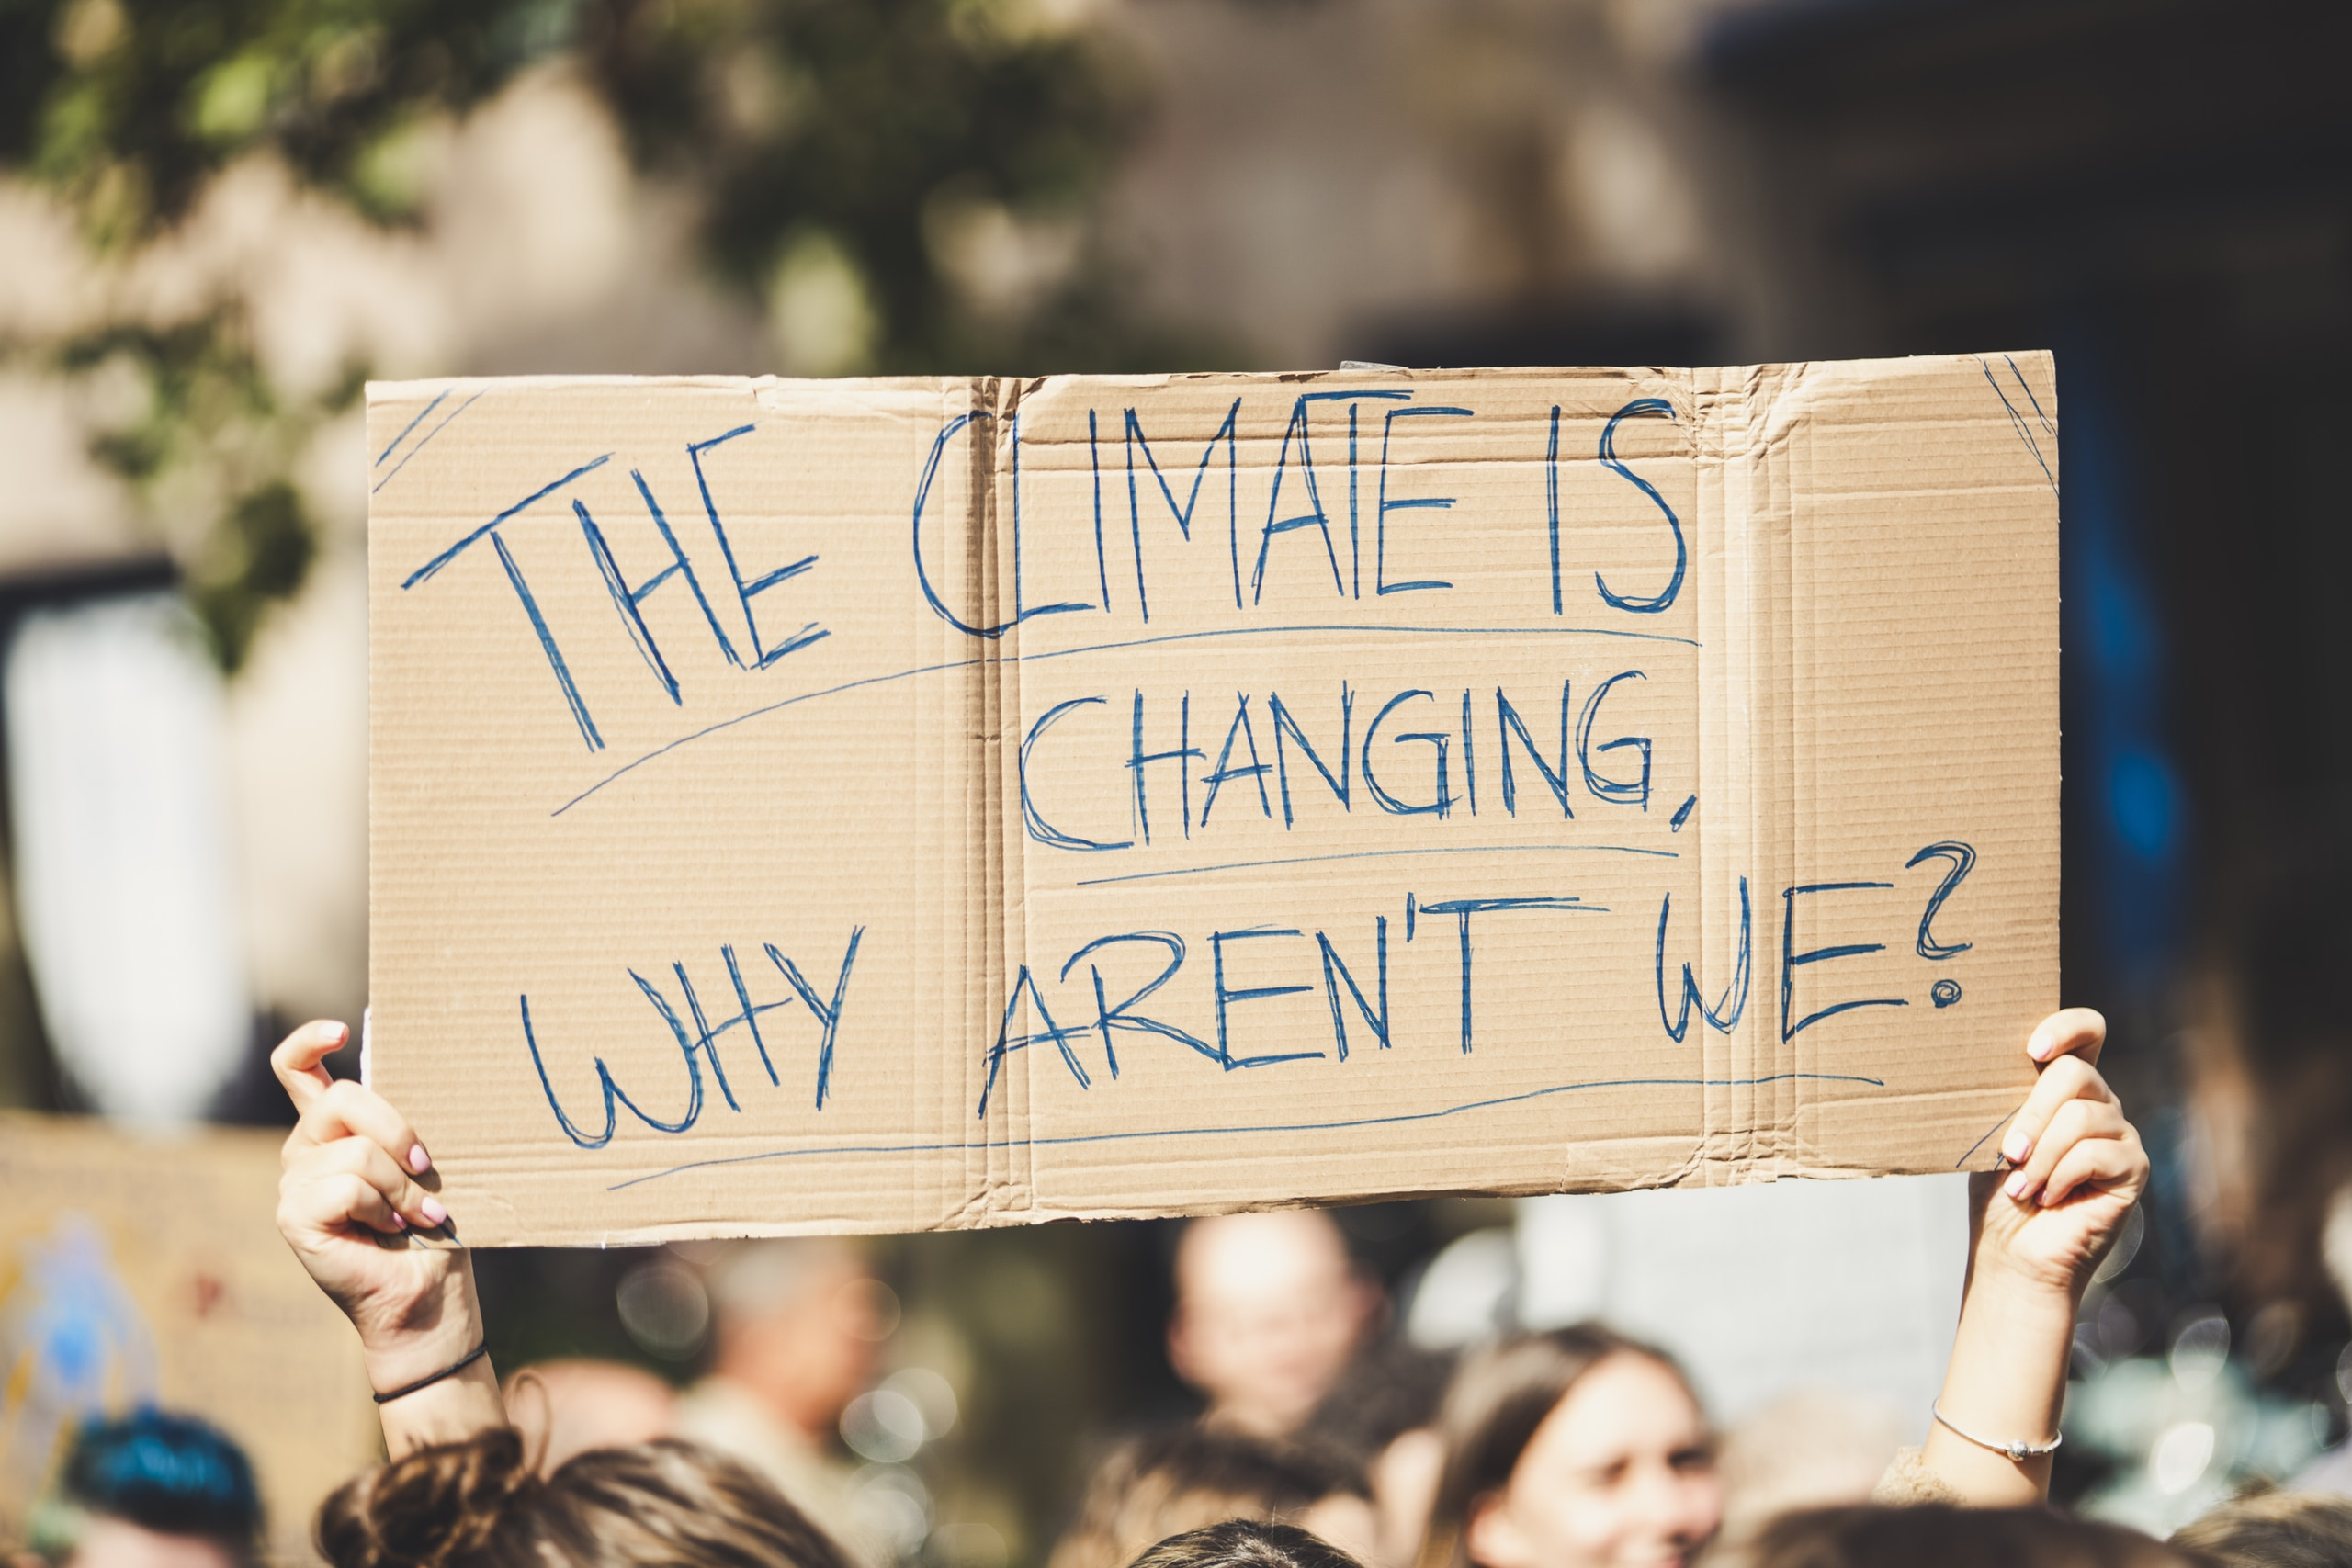 THE CLIMATE IS CHANGING, WHY AREN'T WE? Global climate change protest demonstration strike - No Planet B - 09-20-2019